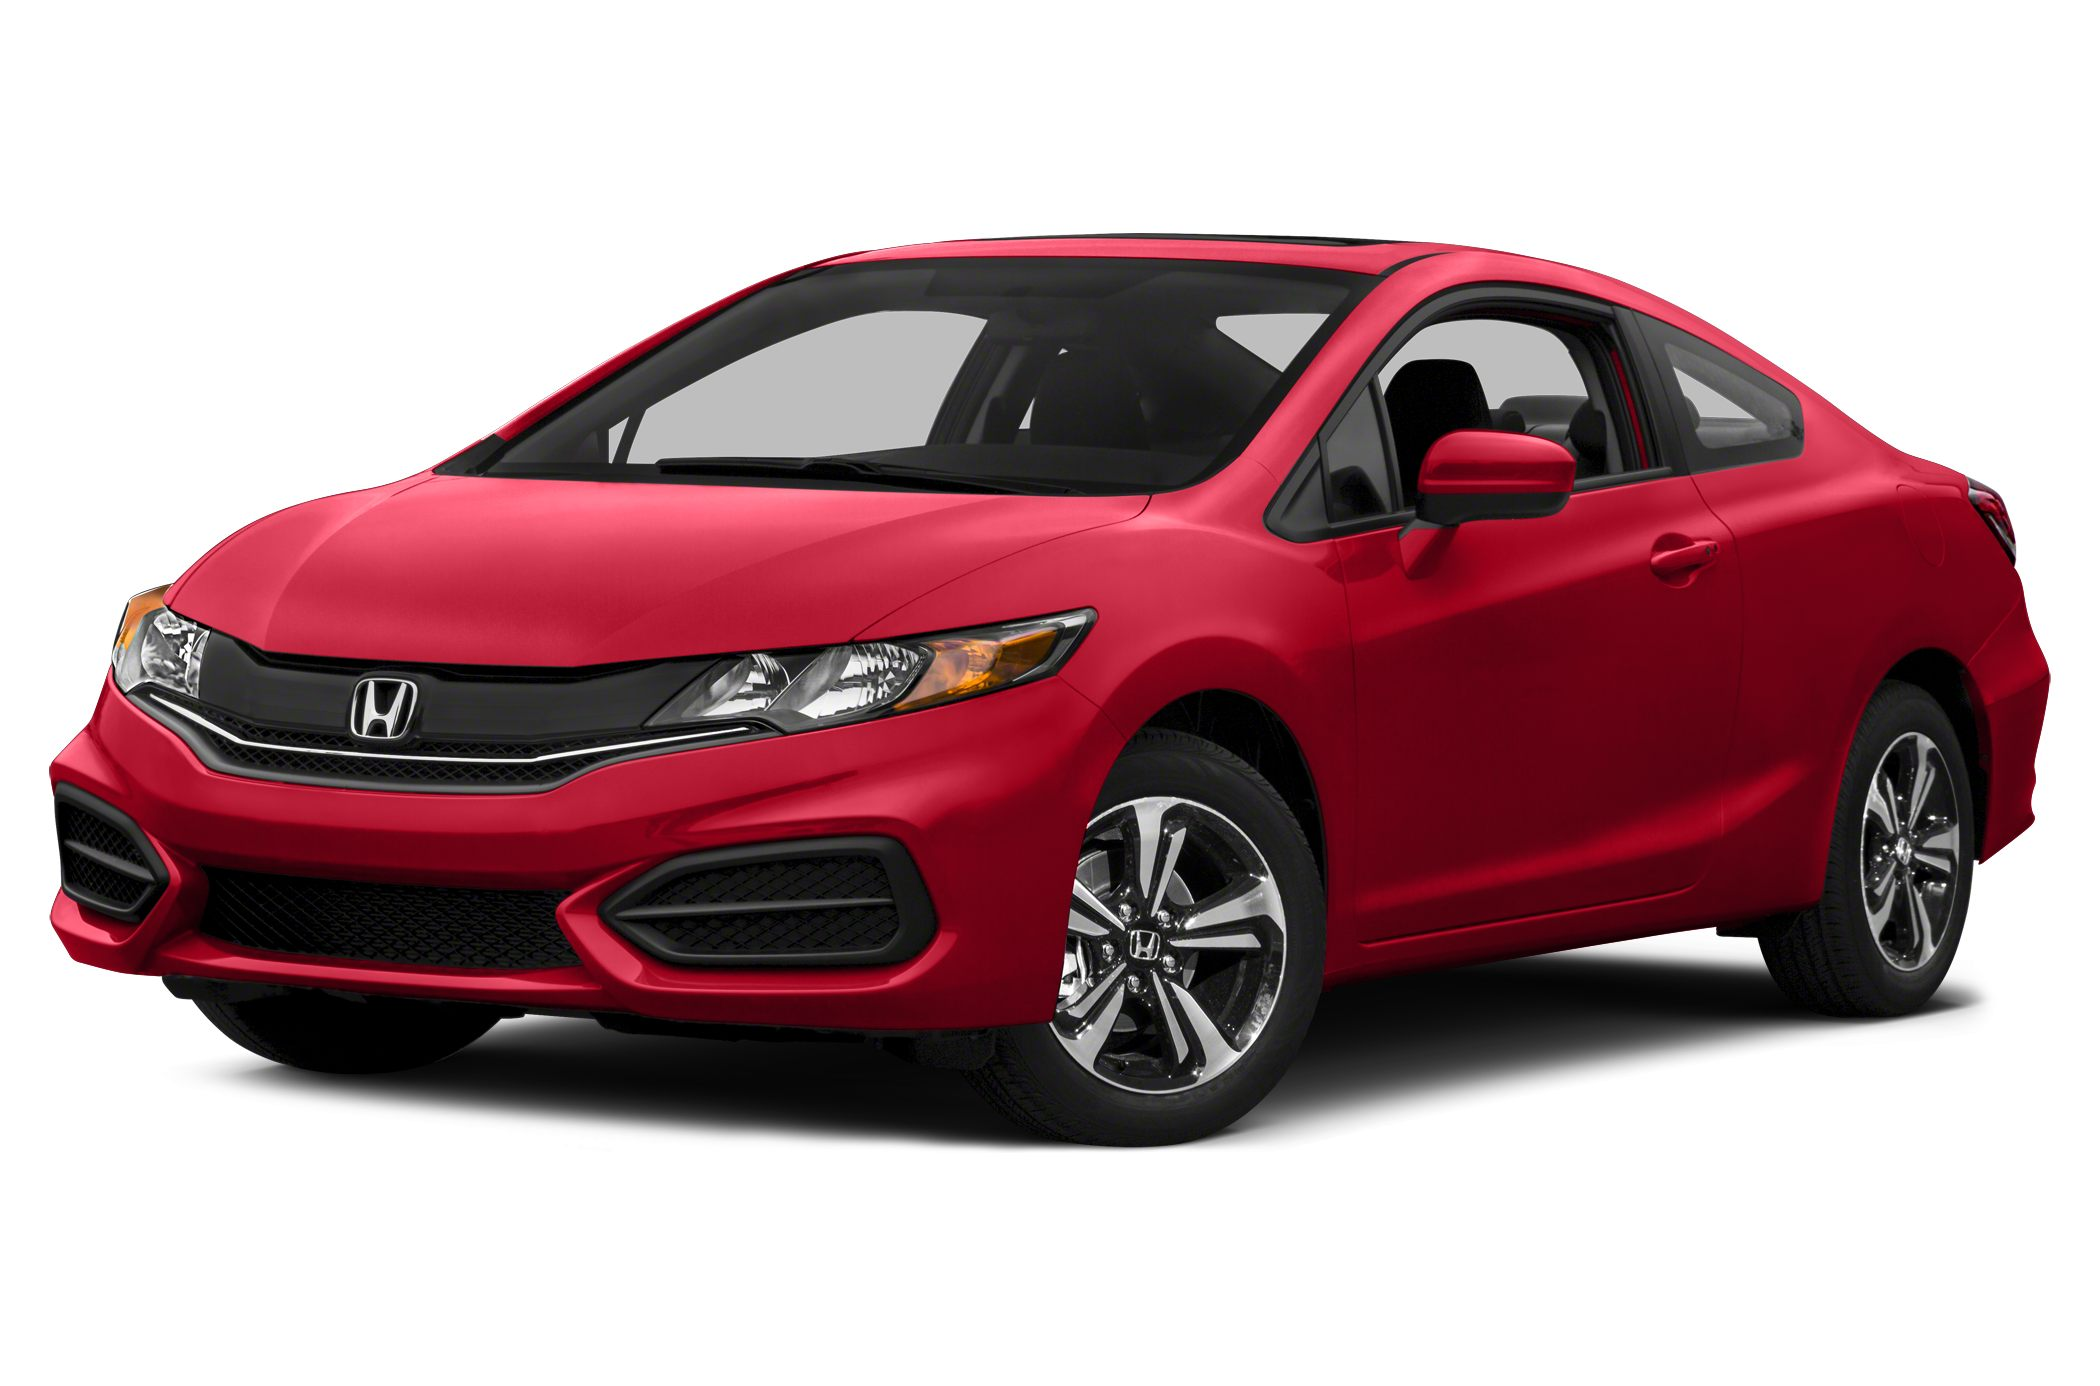 2015 Honda Civic EX Coupe for sale in Johnson City for $21,210 with 0 miles.